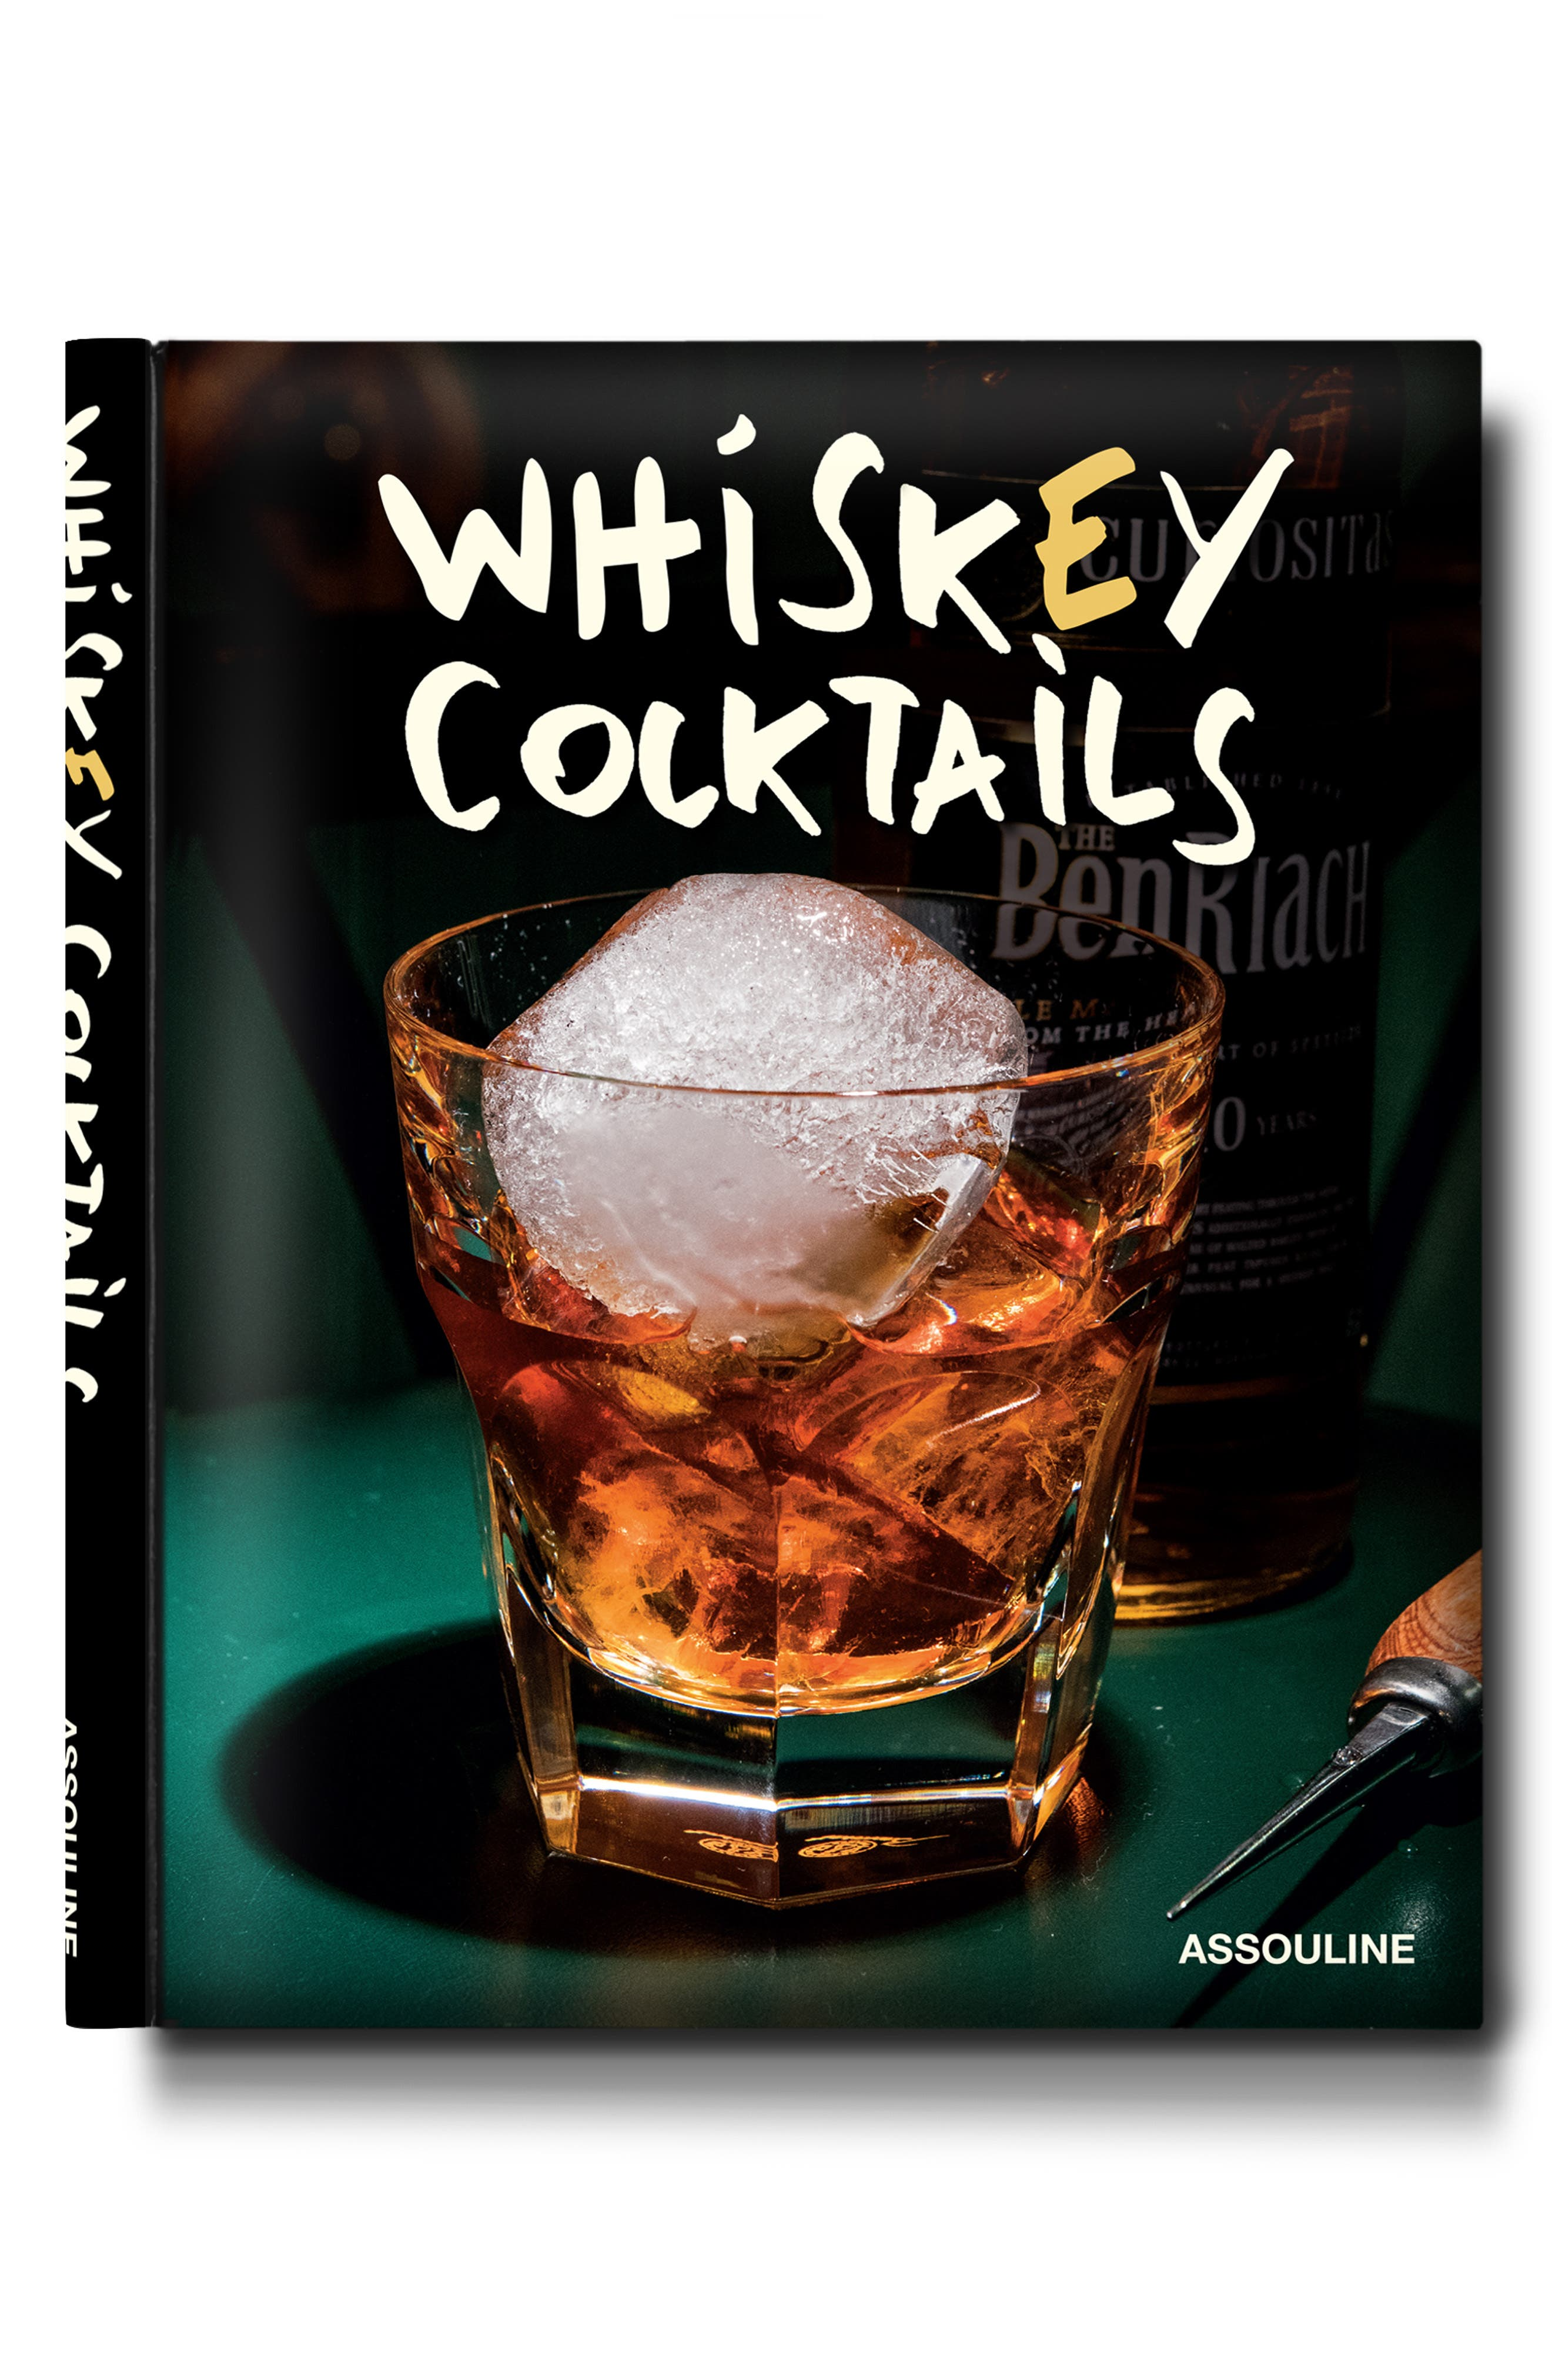 ISBN 9781614287346 product image for 'Whiskey Cocktails' Recipe Book   upcitemdb.com